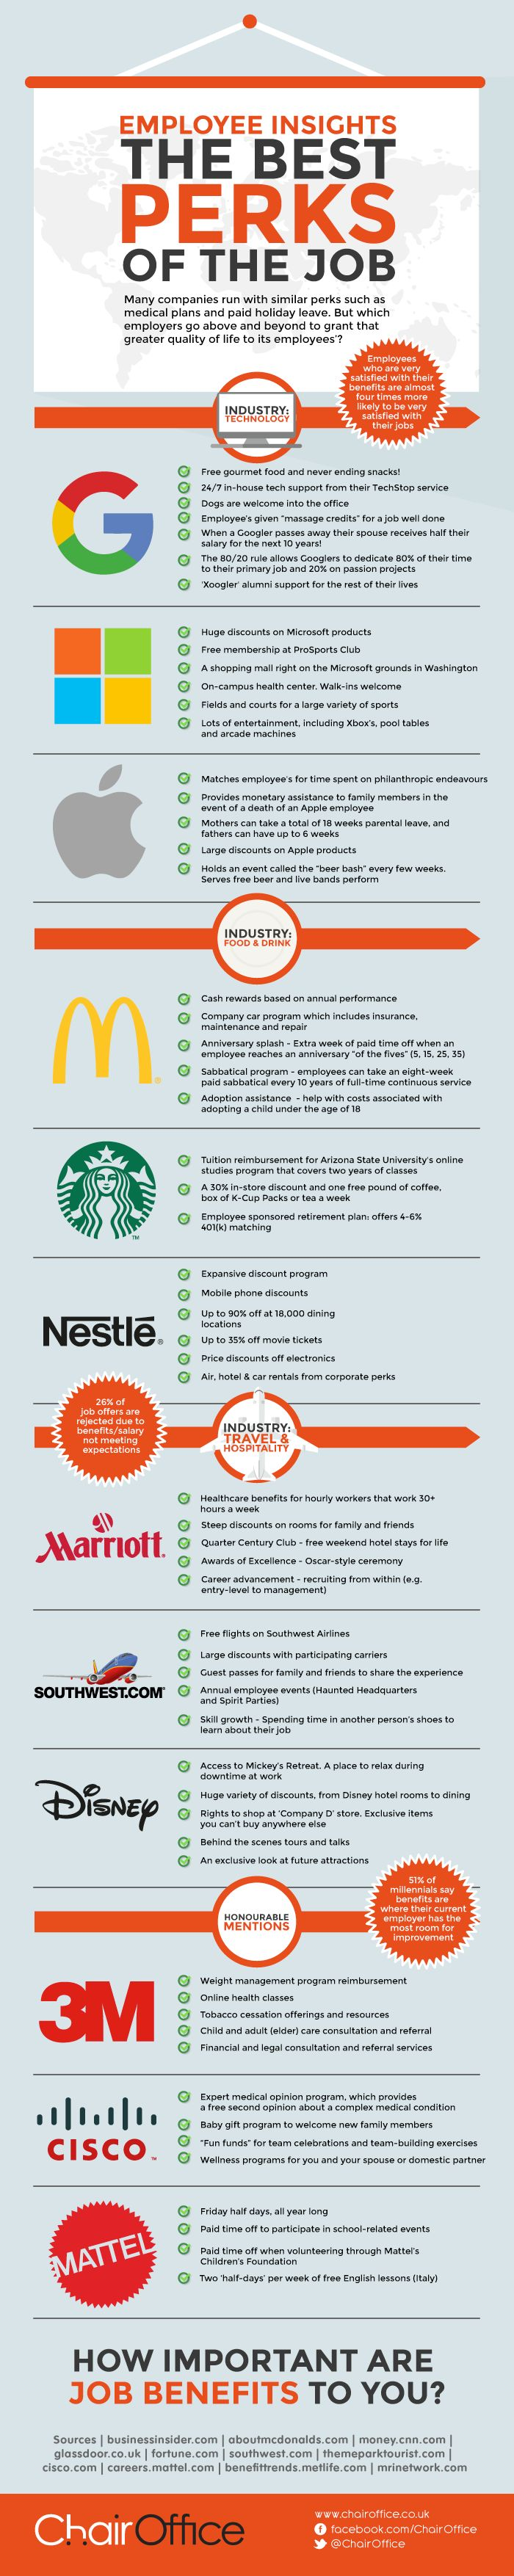 Employee Insights: The Best Perks of the Job [Infographic]